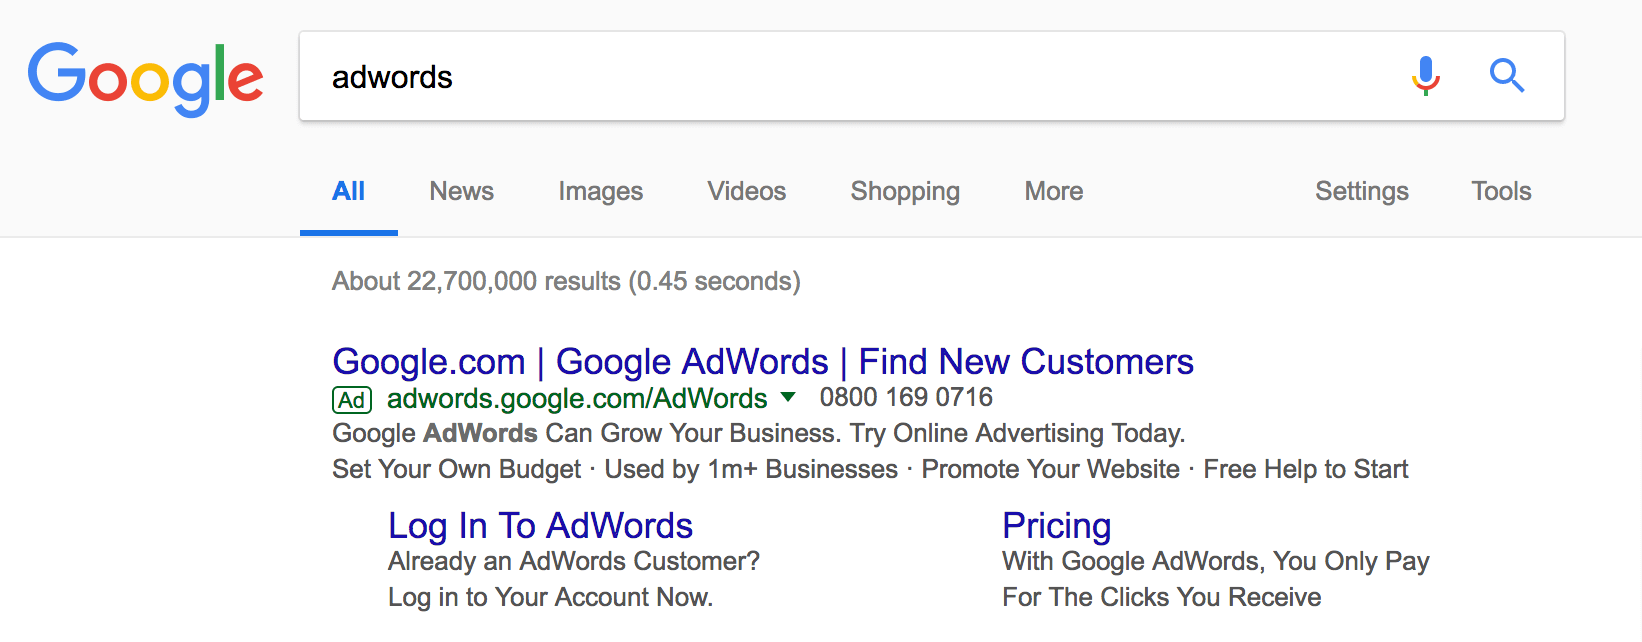 An example of Pay-Per-Click (PPC) advertising on Google.